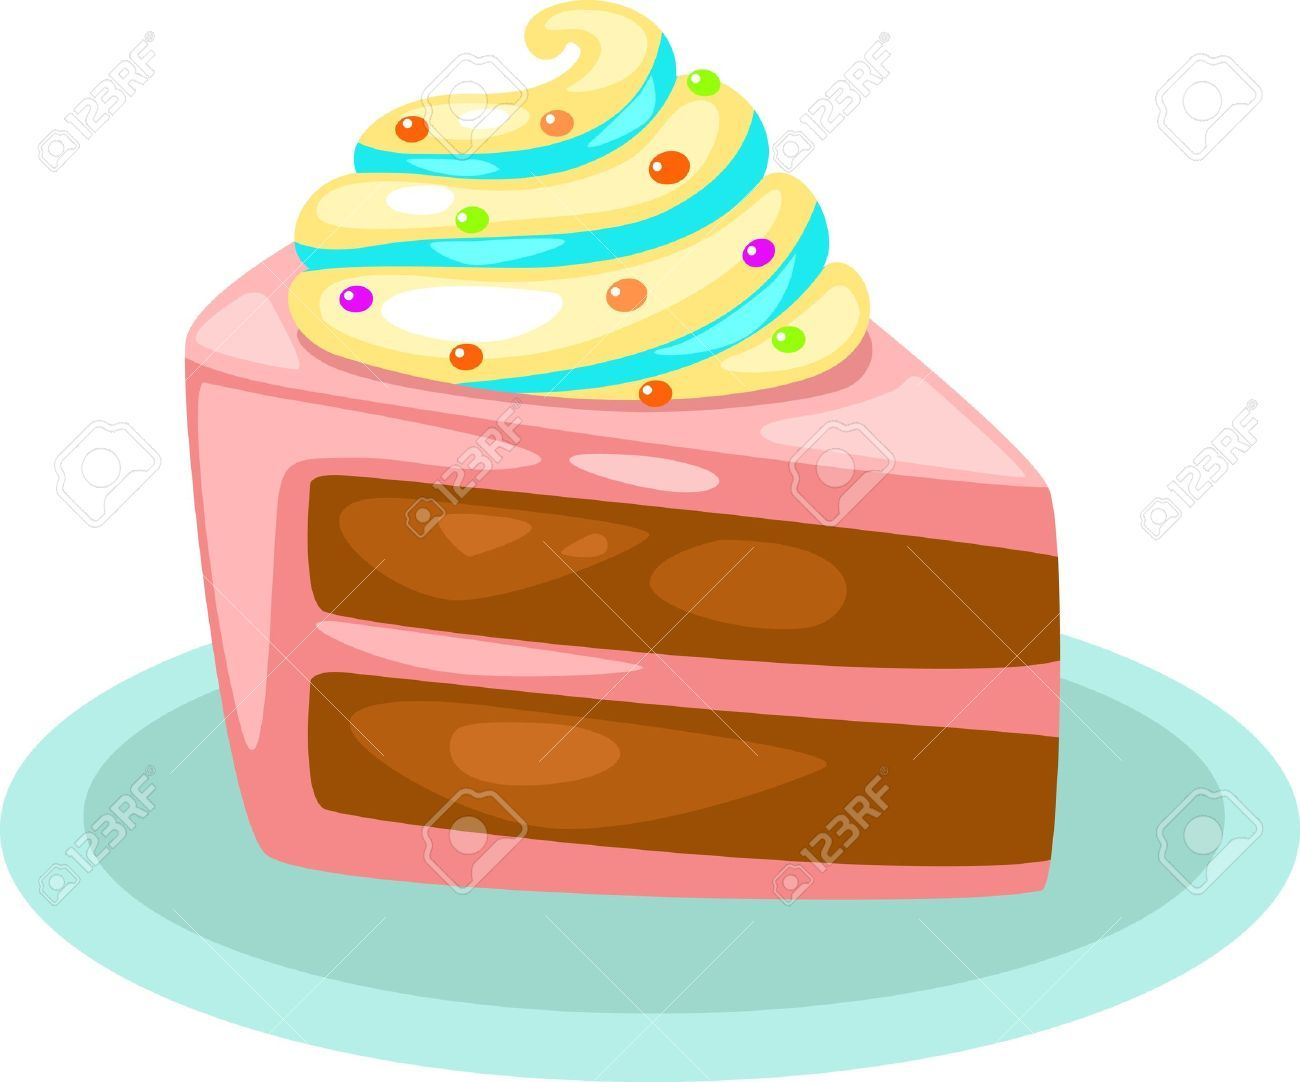 15454358 cake vector illustration stock vector cake cartoon slice rh pinterest com slice of cake clipart free slice of cake clipart black and white